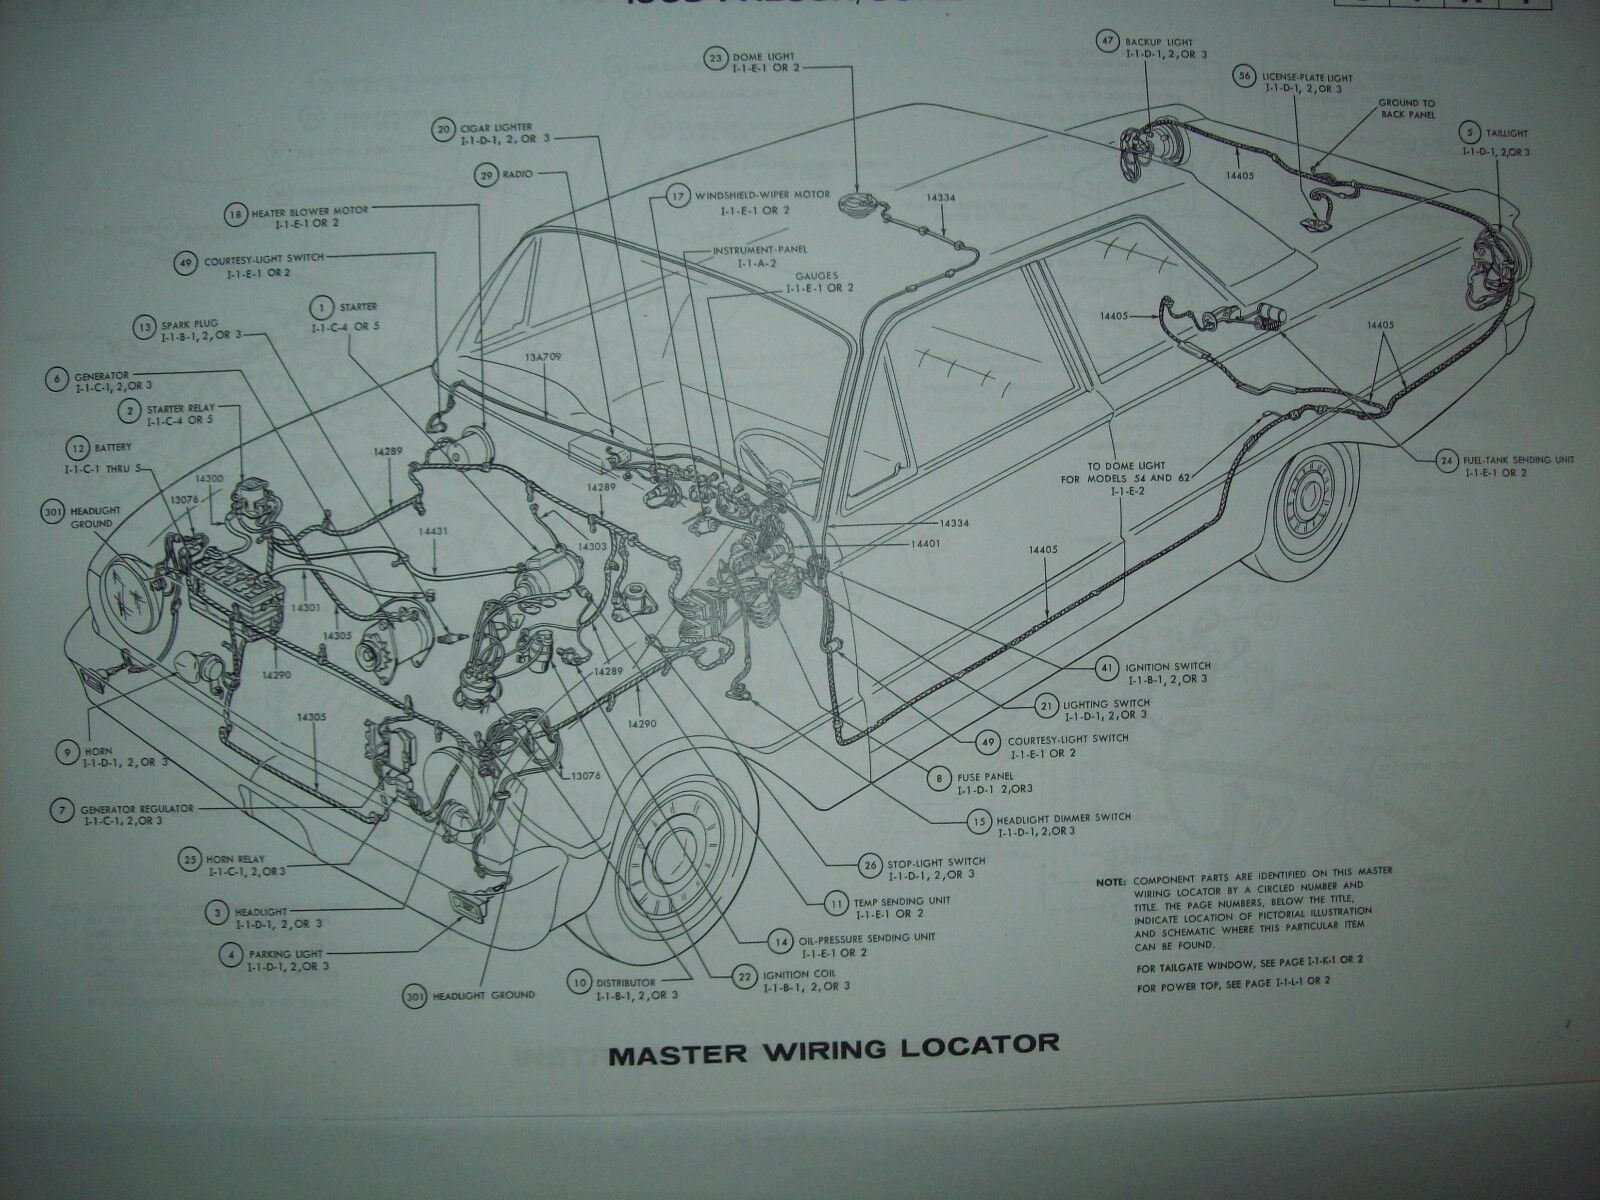 1965 Lincoln Continental Turn Signal Wiring Diagram Electrical 1975 Great Comet